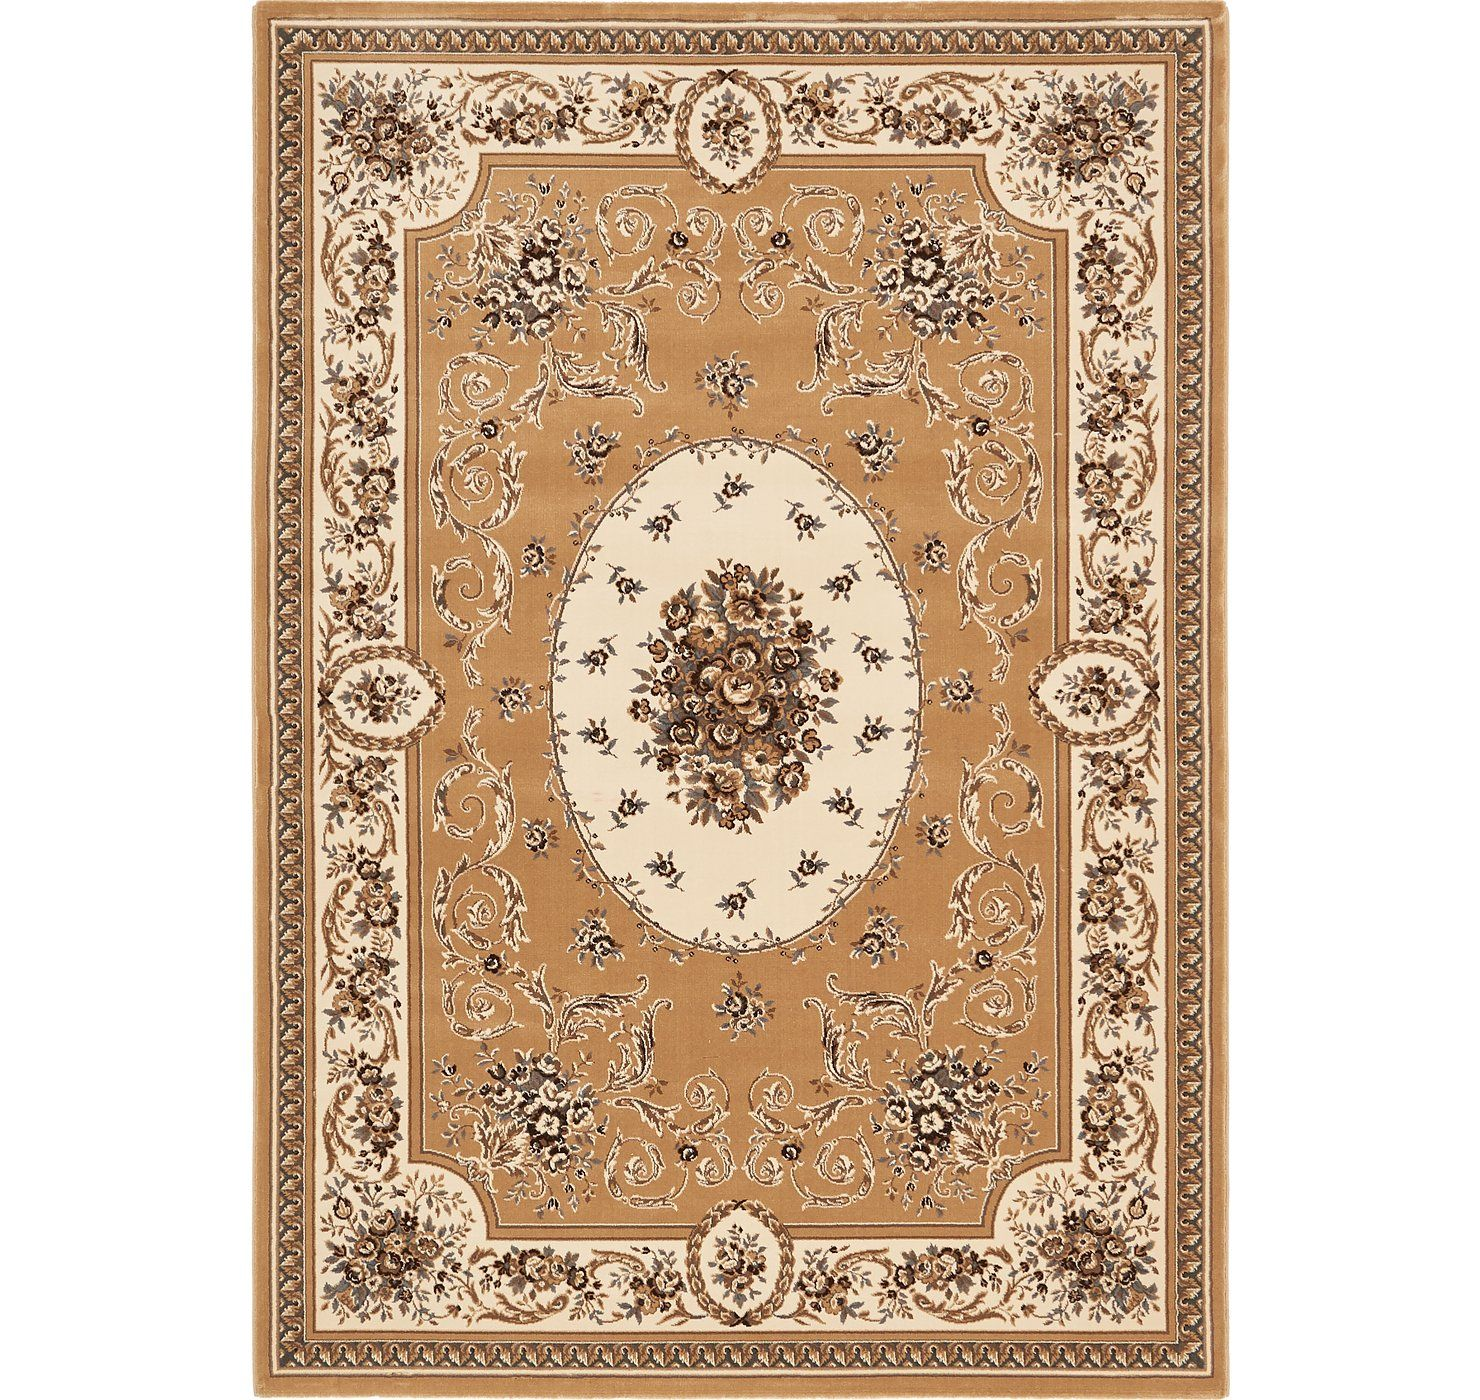 7x10 Clearance Rugs eSaleRugs Page 23 Judy Rumpf